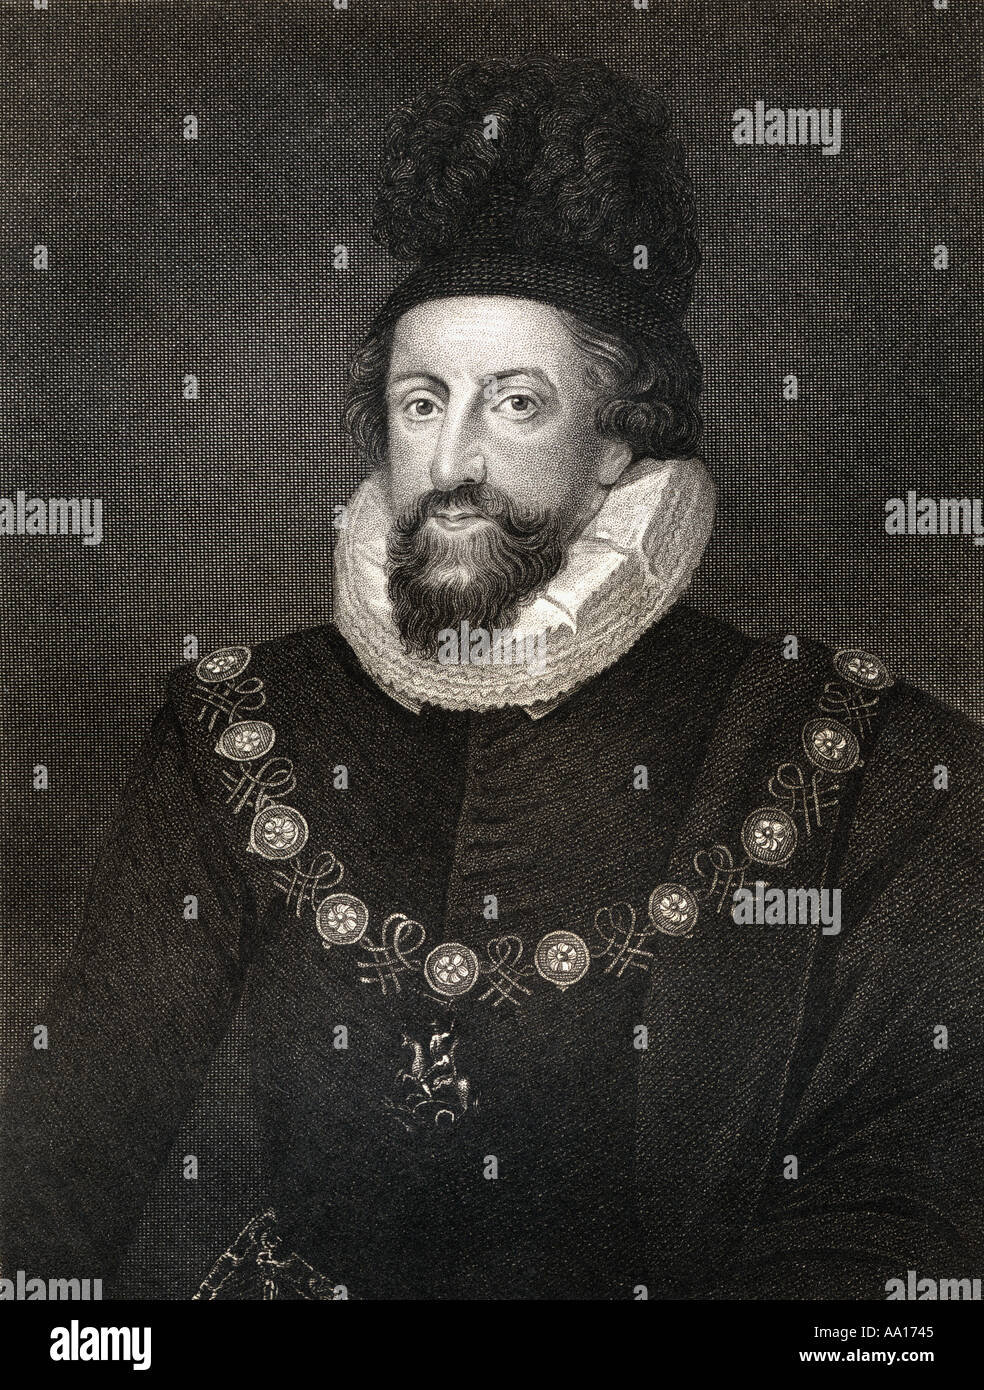 Admiral Thomas Howard, 1st Earl of Suffolk, 1561 – 1626. Lord Howard of Walden. An English commander during the Stock Photo